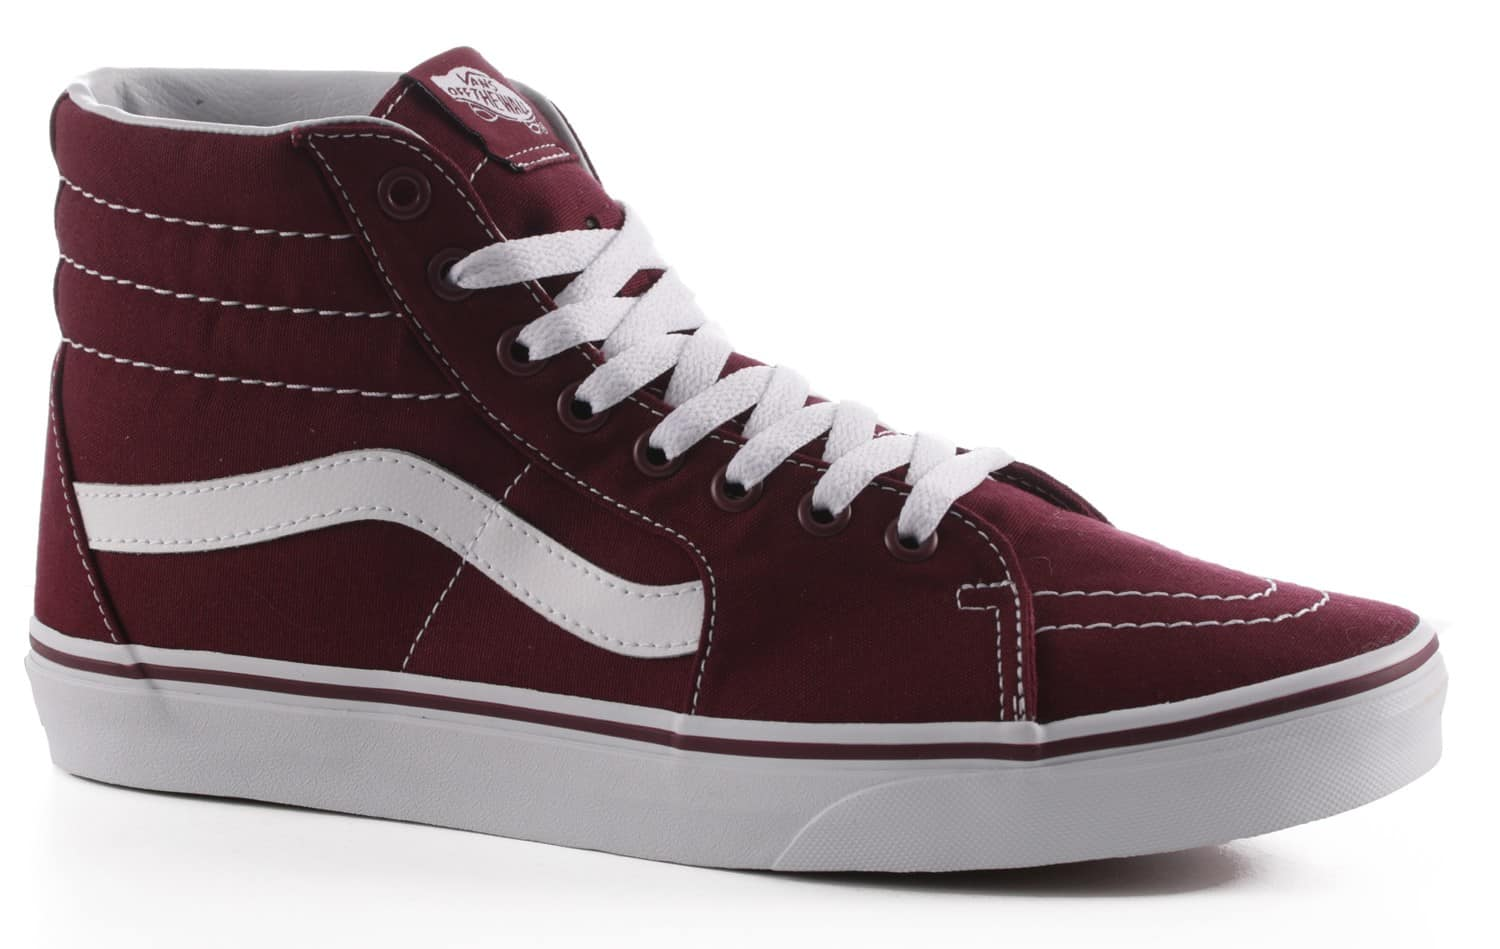 High Top Skate Shoes On Sale from Converse, Vans, HUF, Nike SB and ...